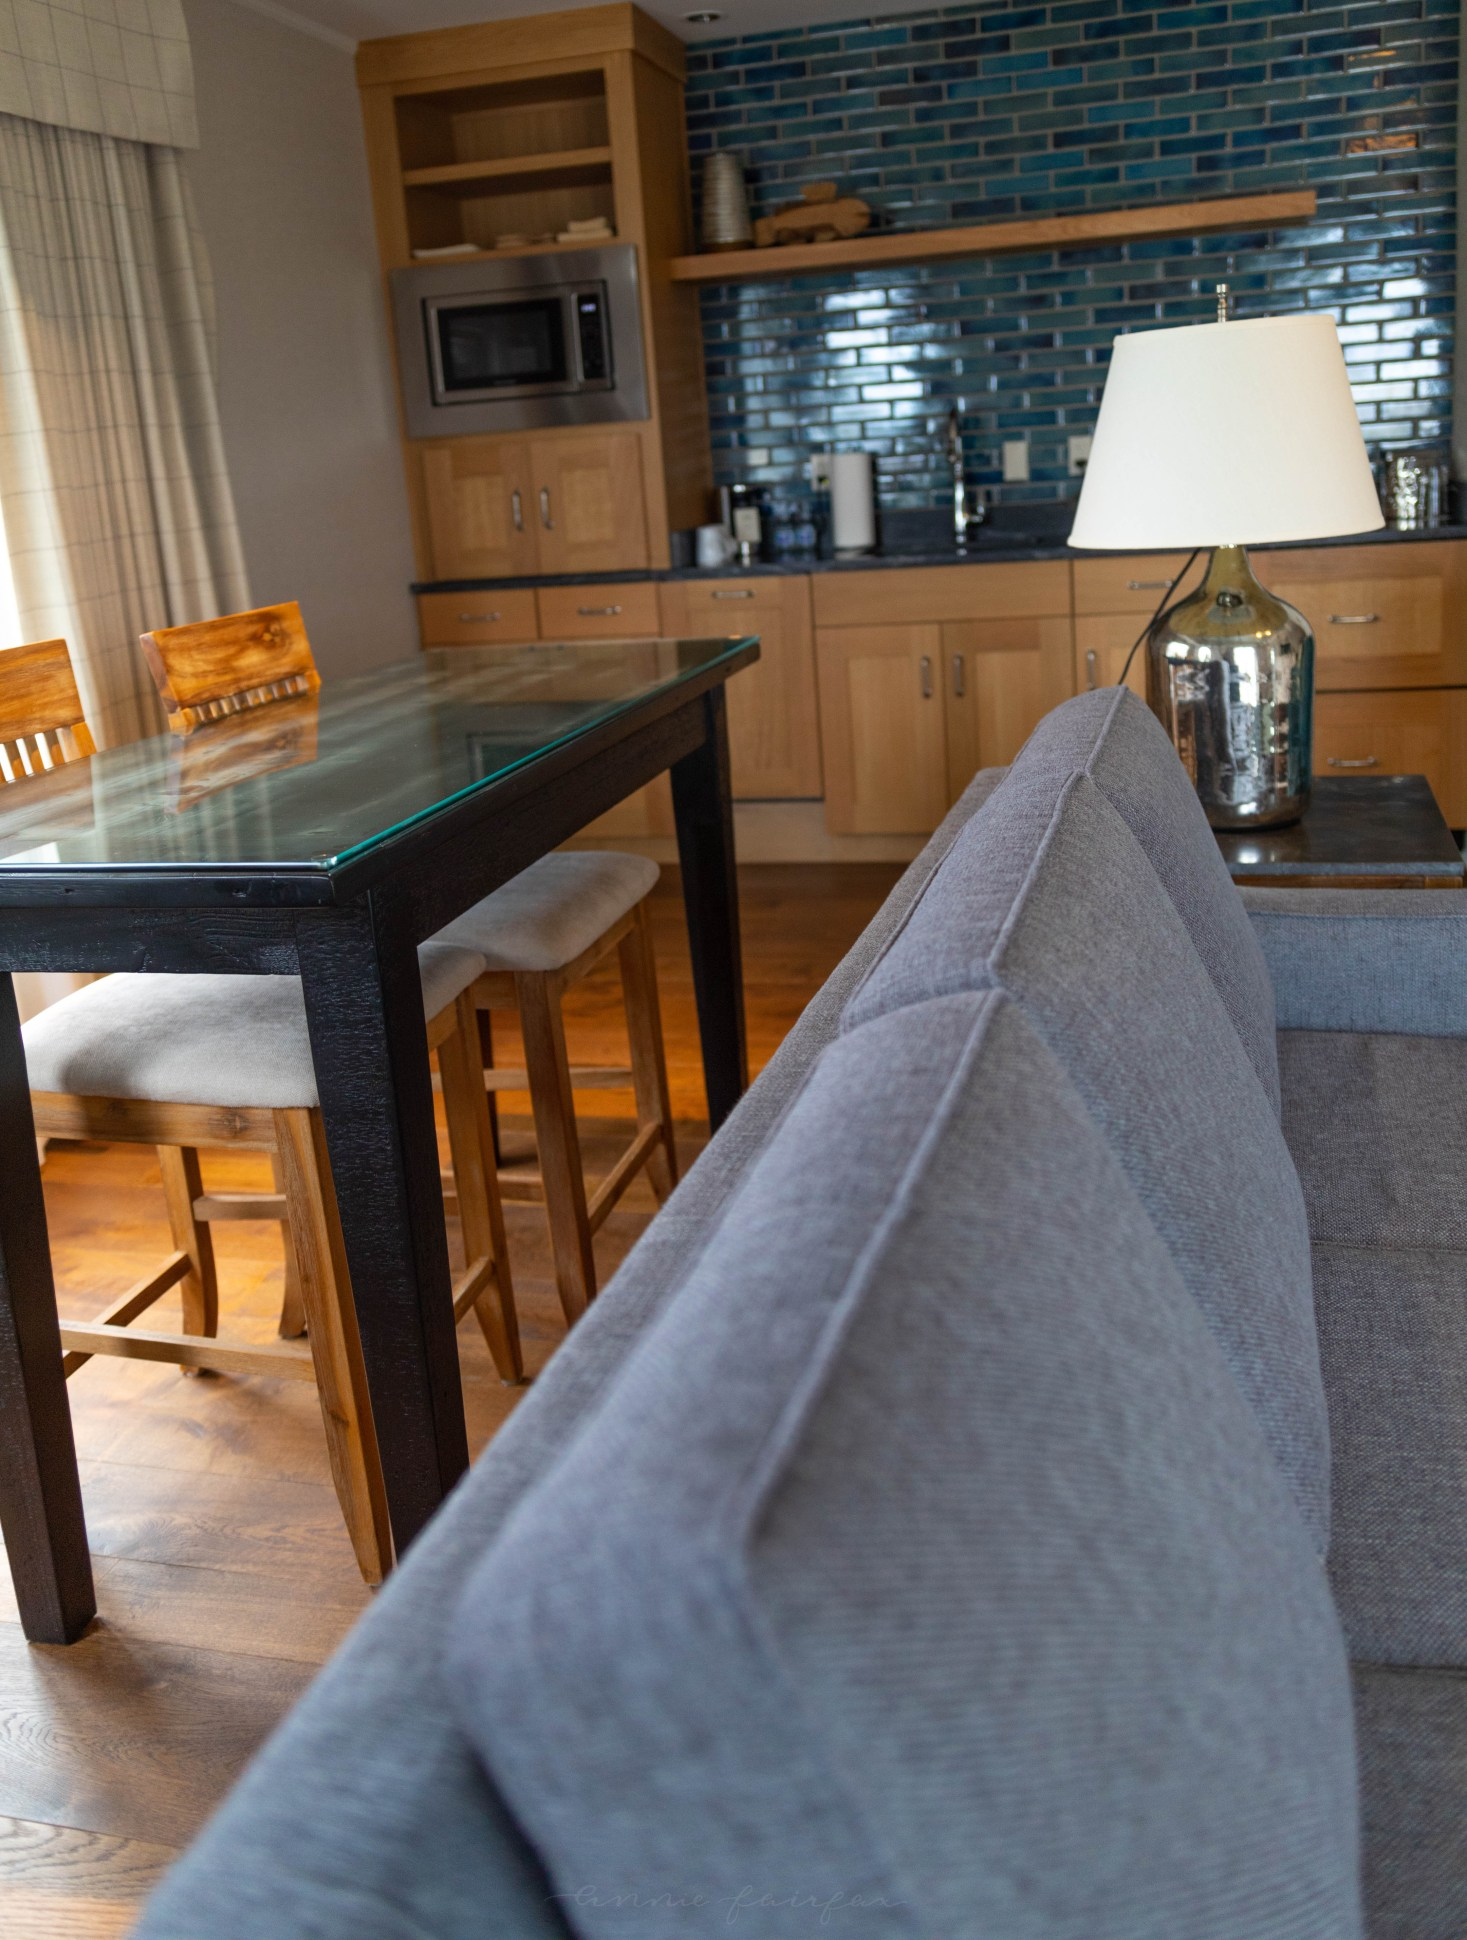 Hotel Walloon One Bedroom Luxury Suite with Master Bathroom, King Bed, Kitchen, Private Balcony and Lake View